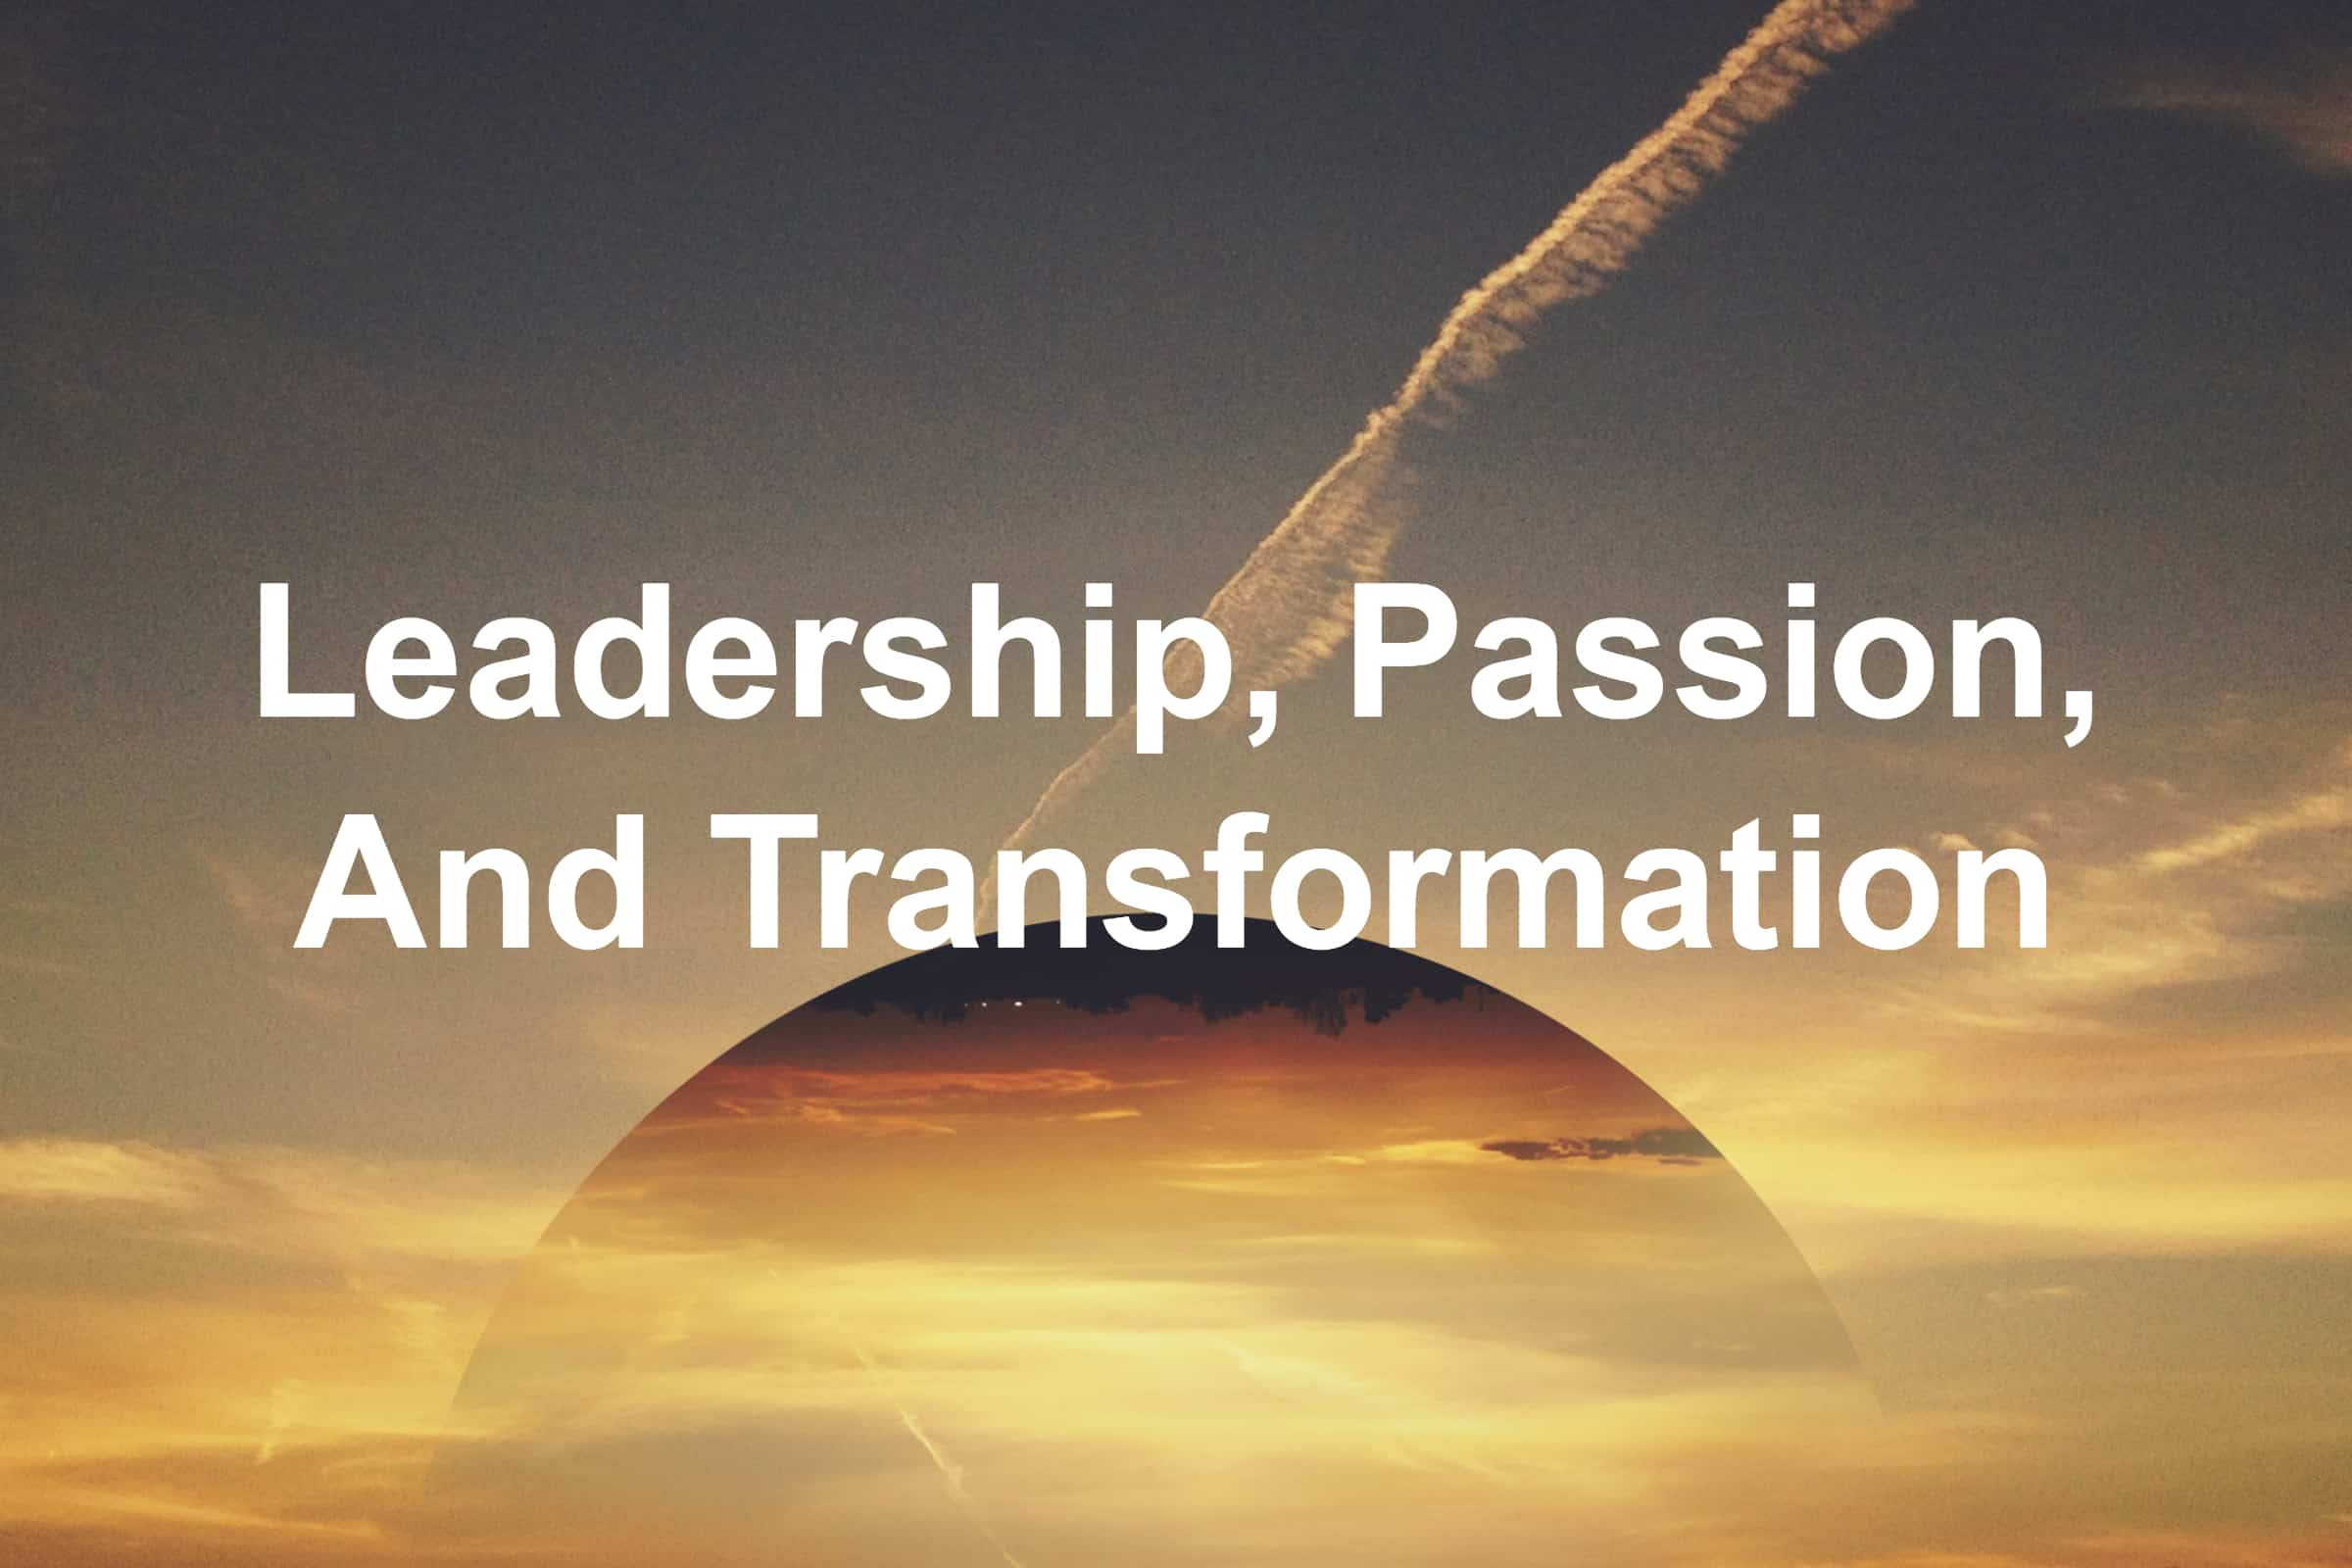 Learn about leadership, passion, and transformation